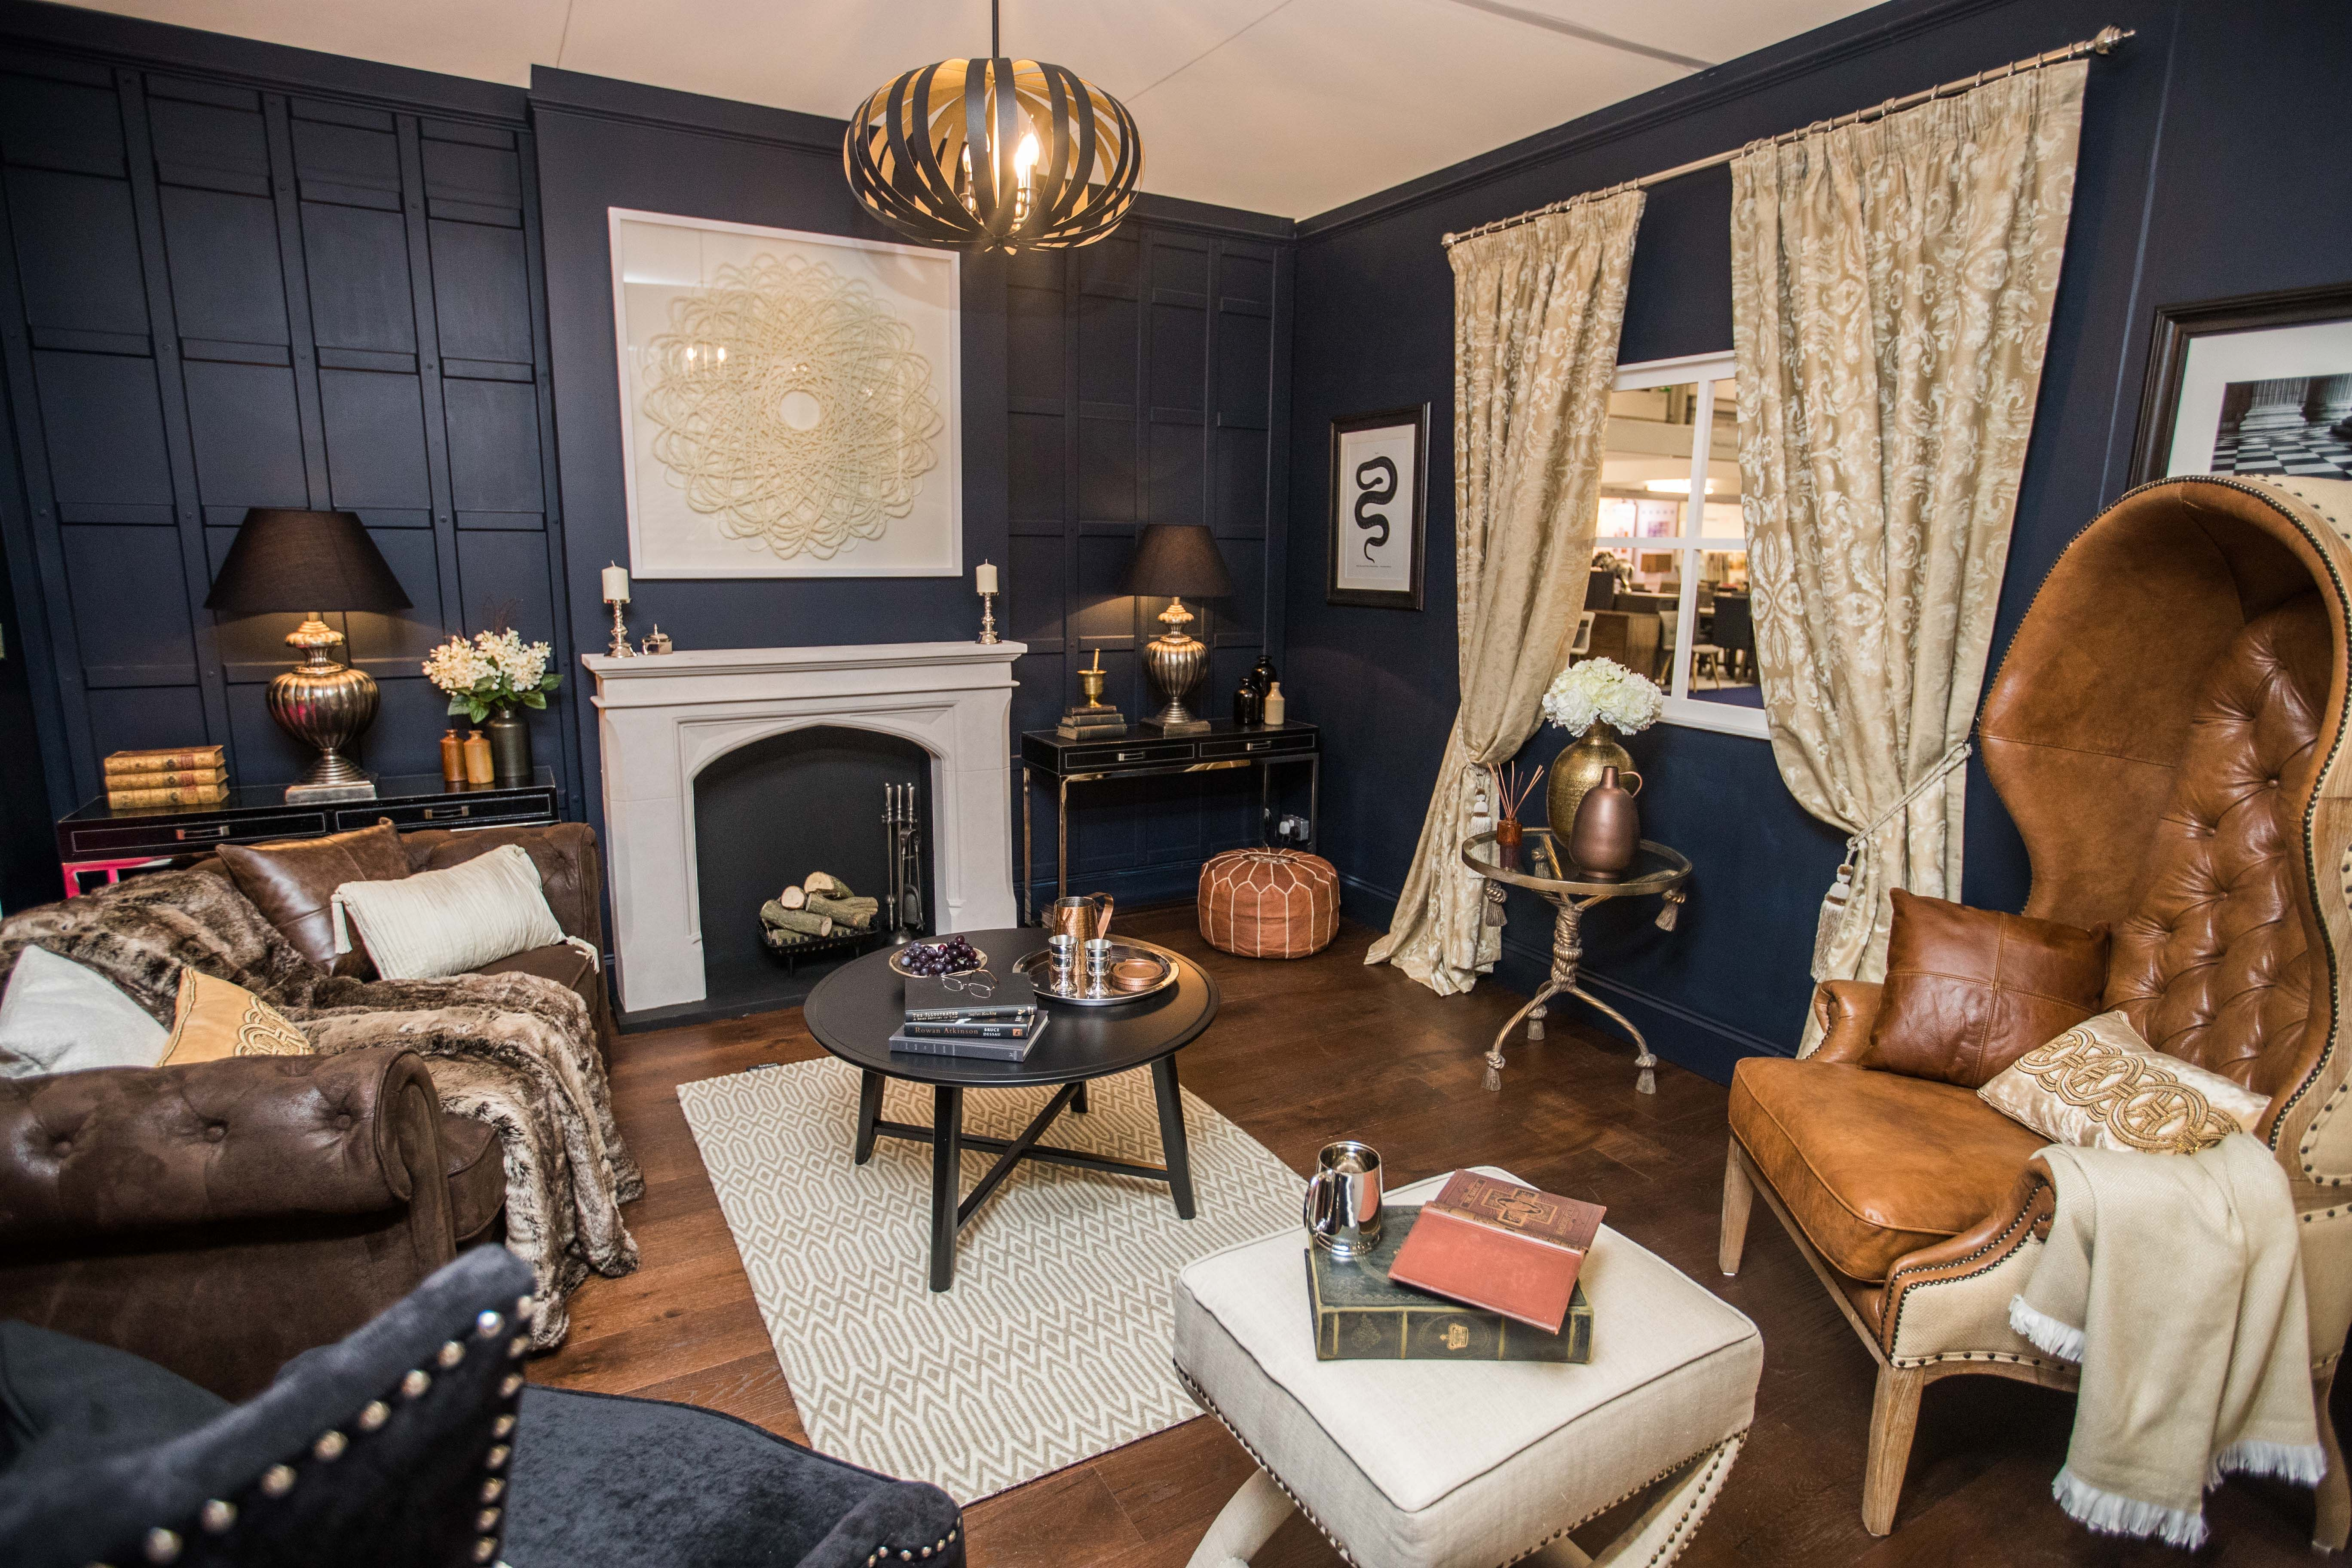 Interior Room Set Inspired By The TV Show Blackadder Which Was Part Of Grand